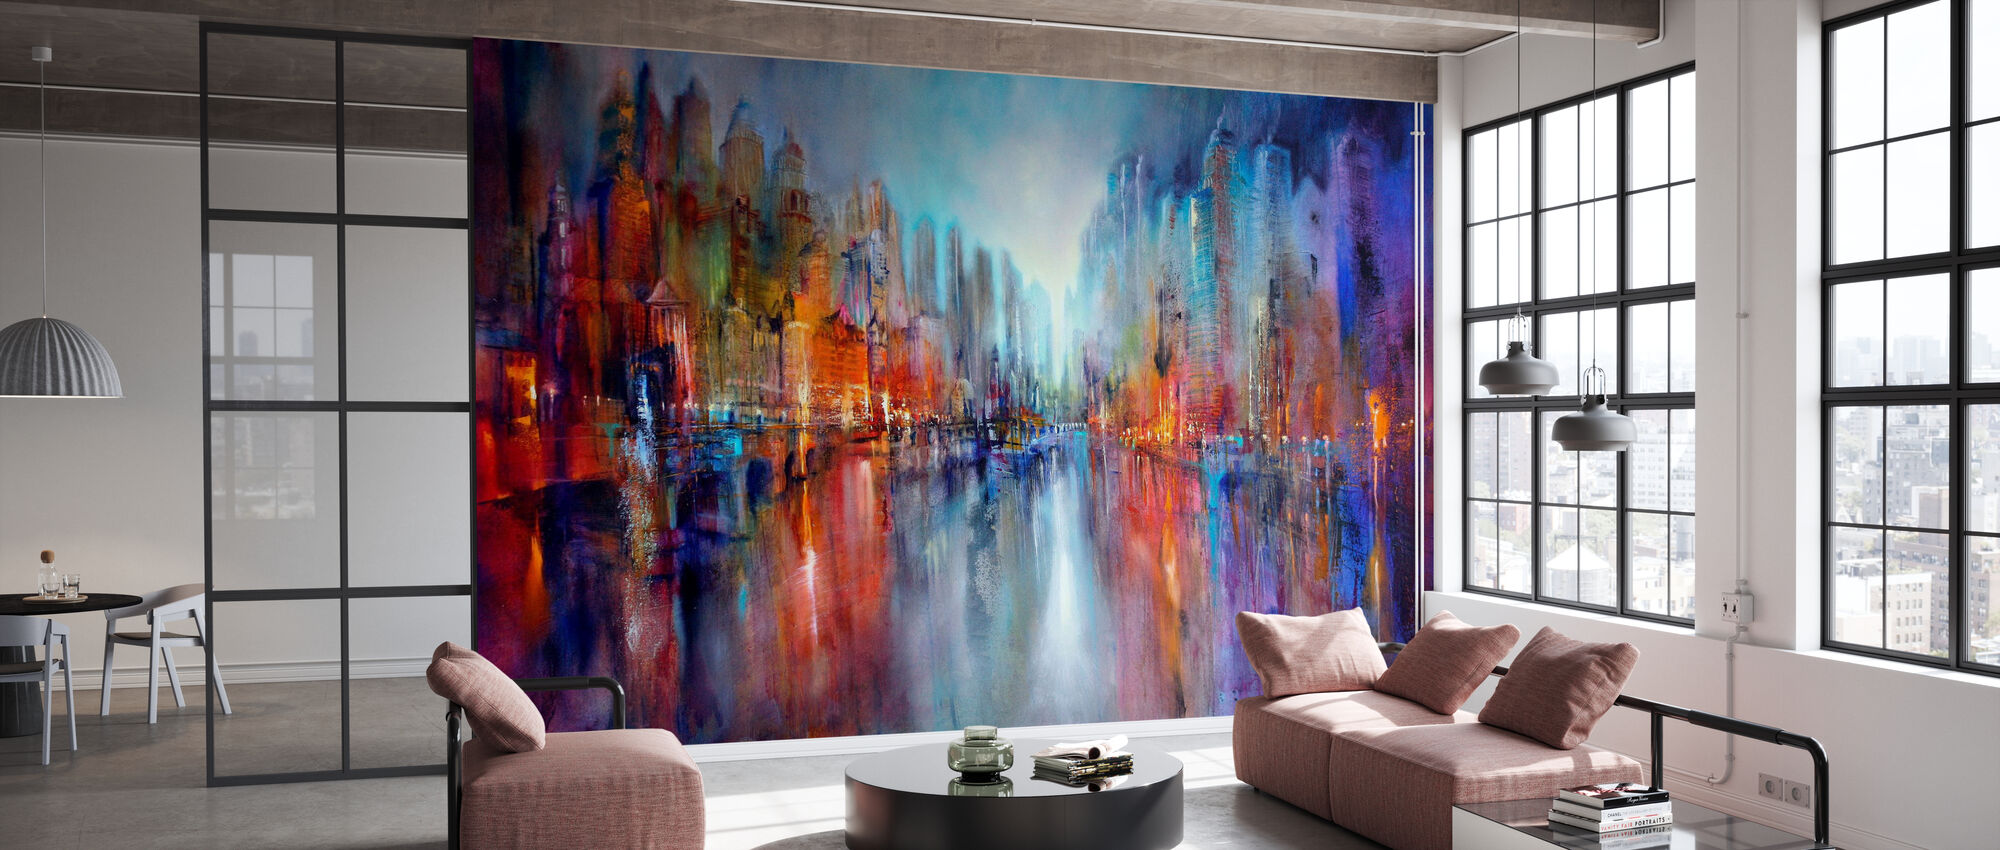 City on the River - Wallpaper - Office